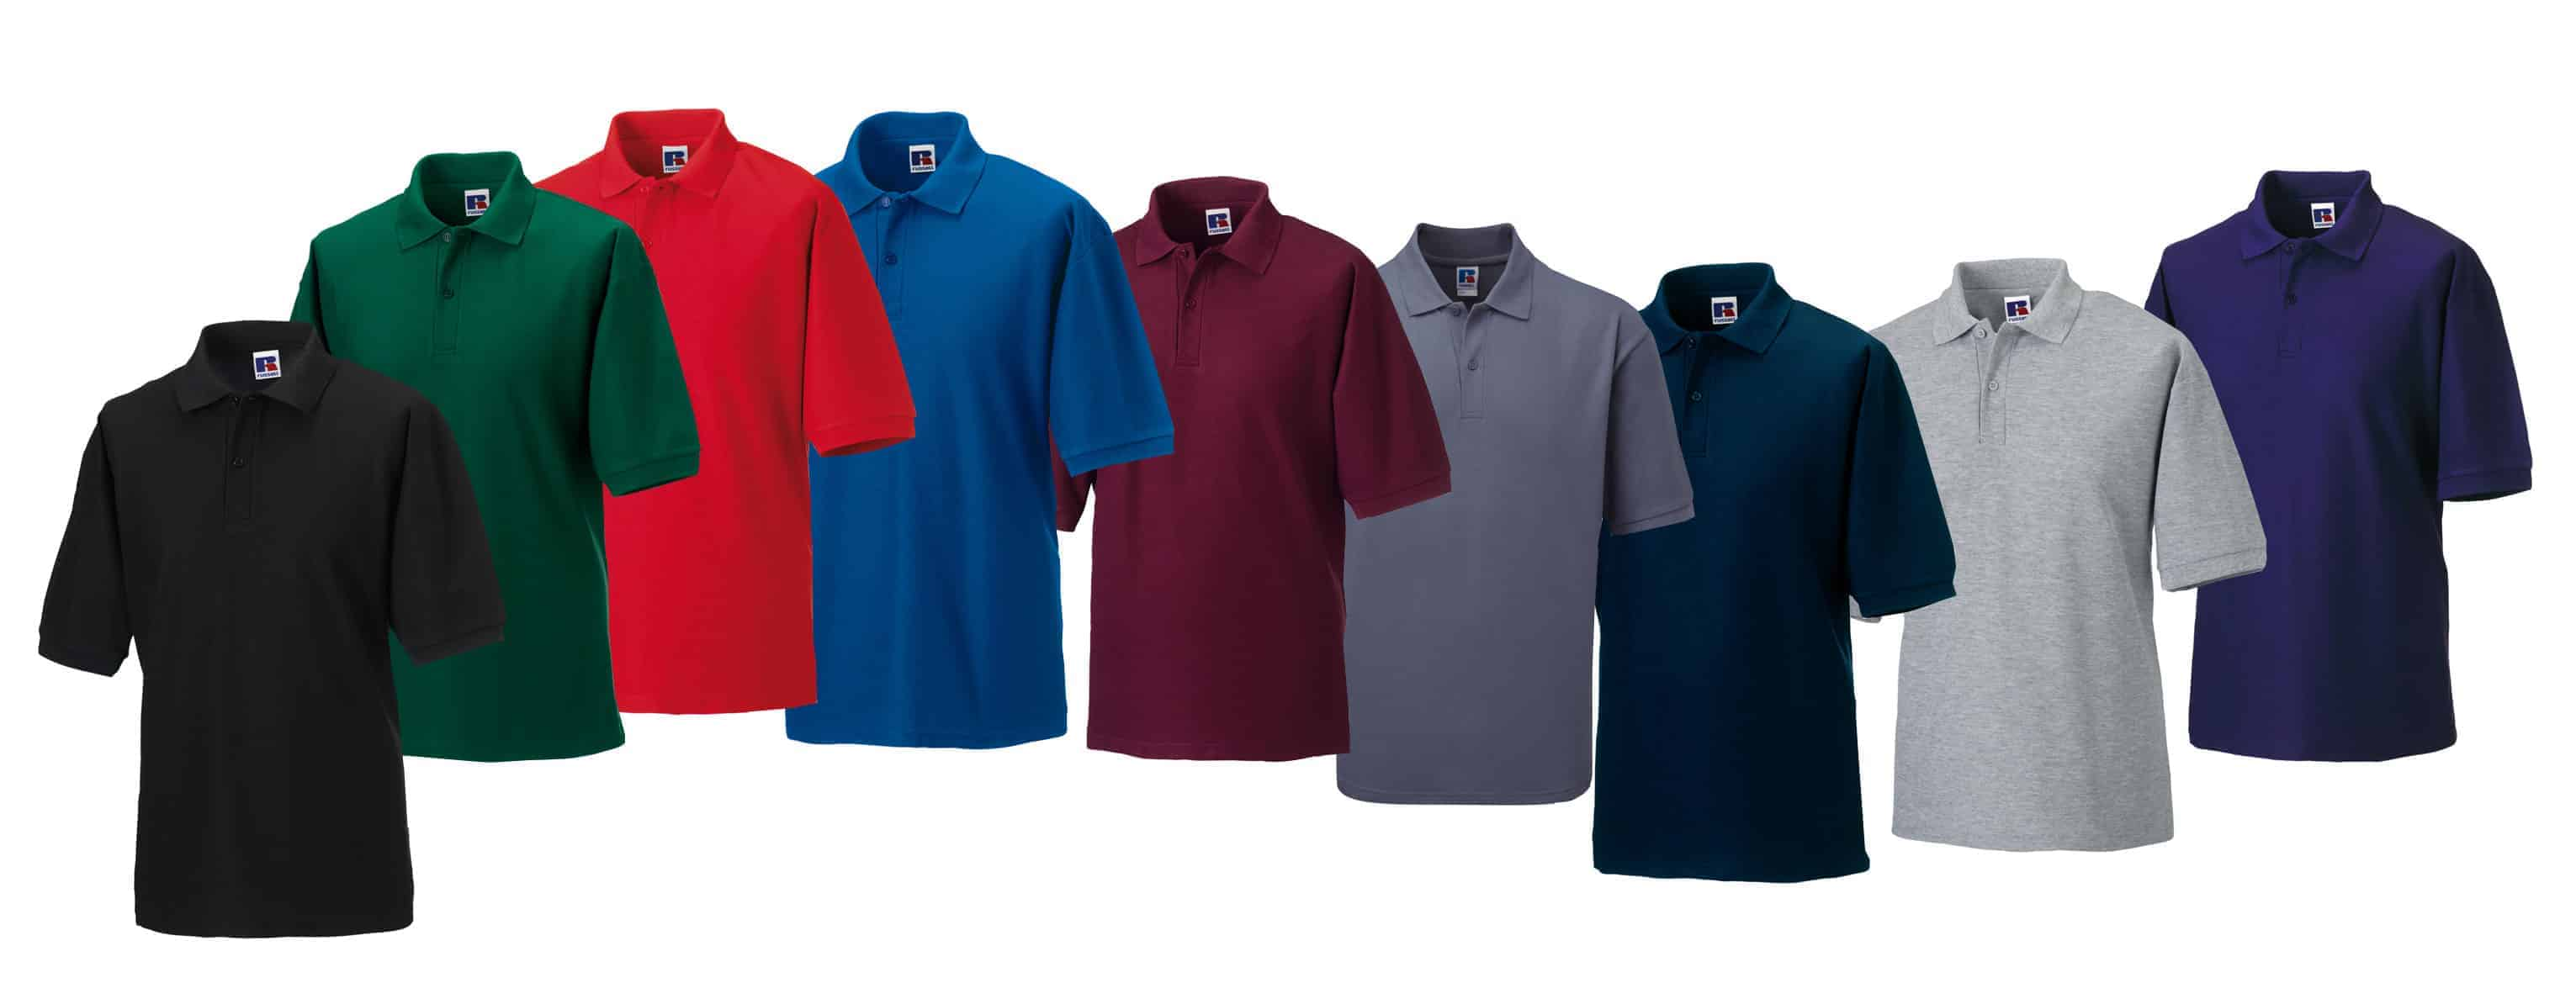 0f07cee2 Selection of polo shirt suitable for printing or embroidery